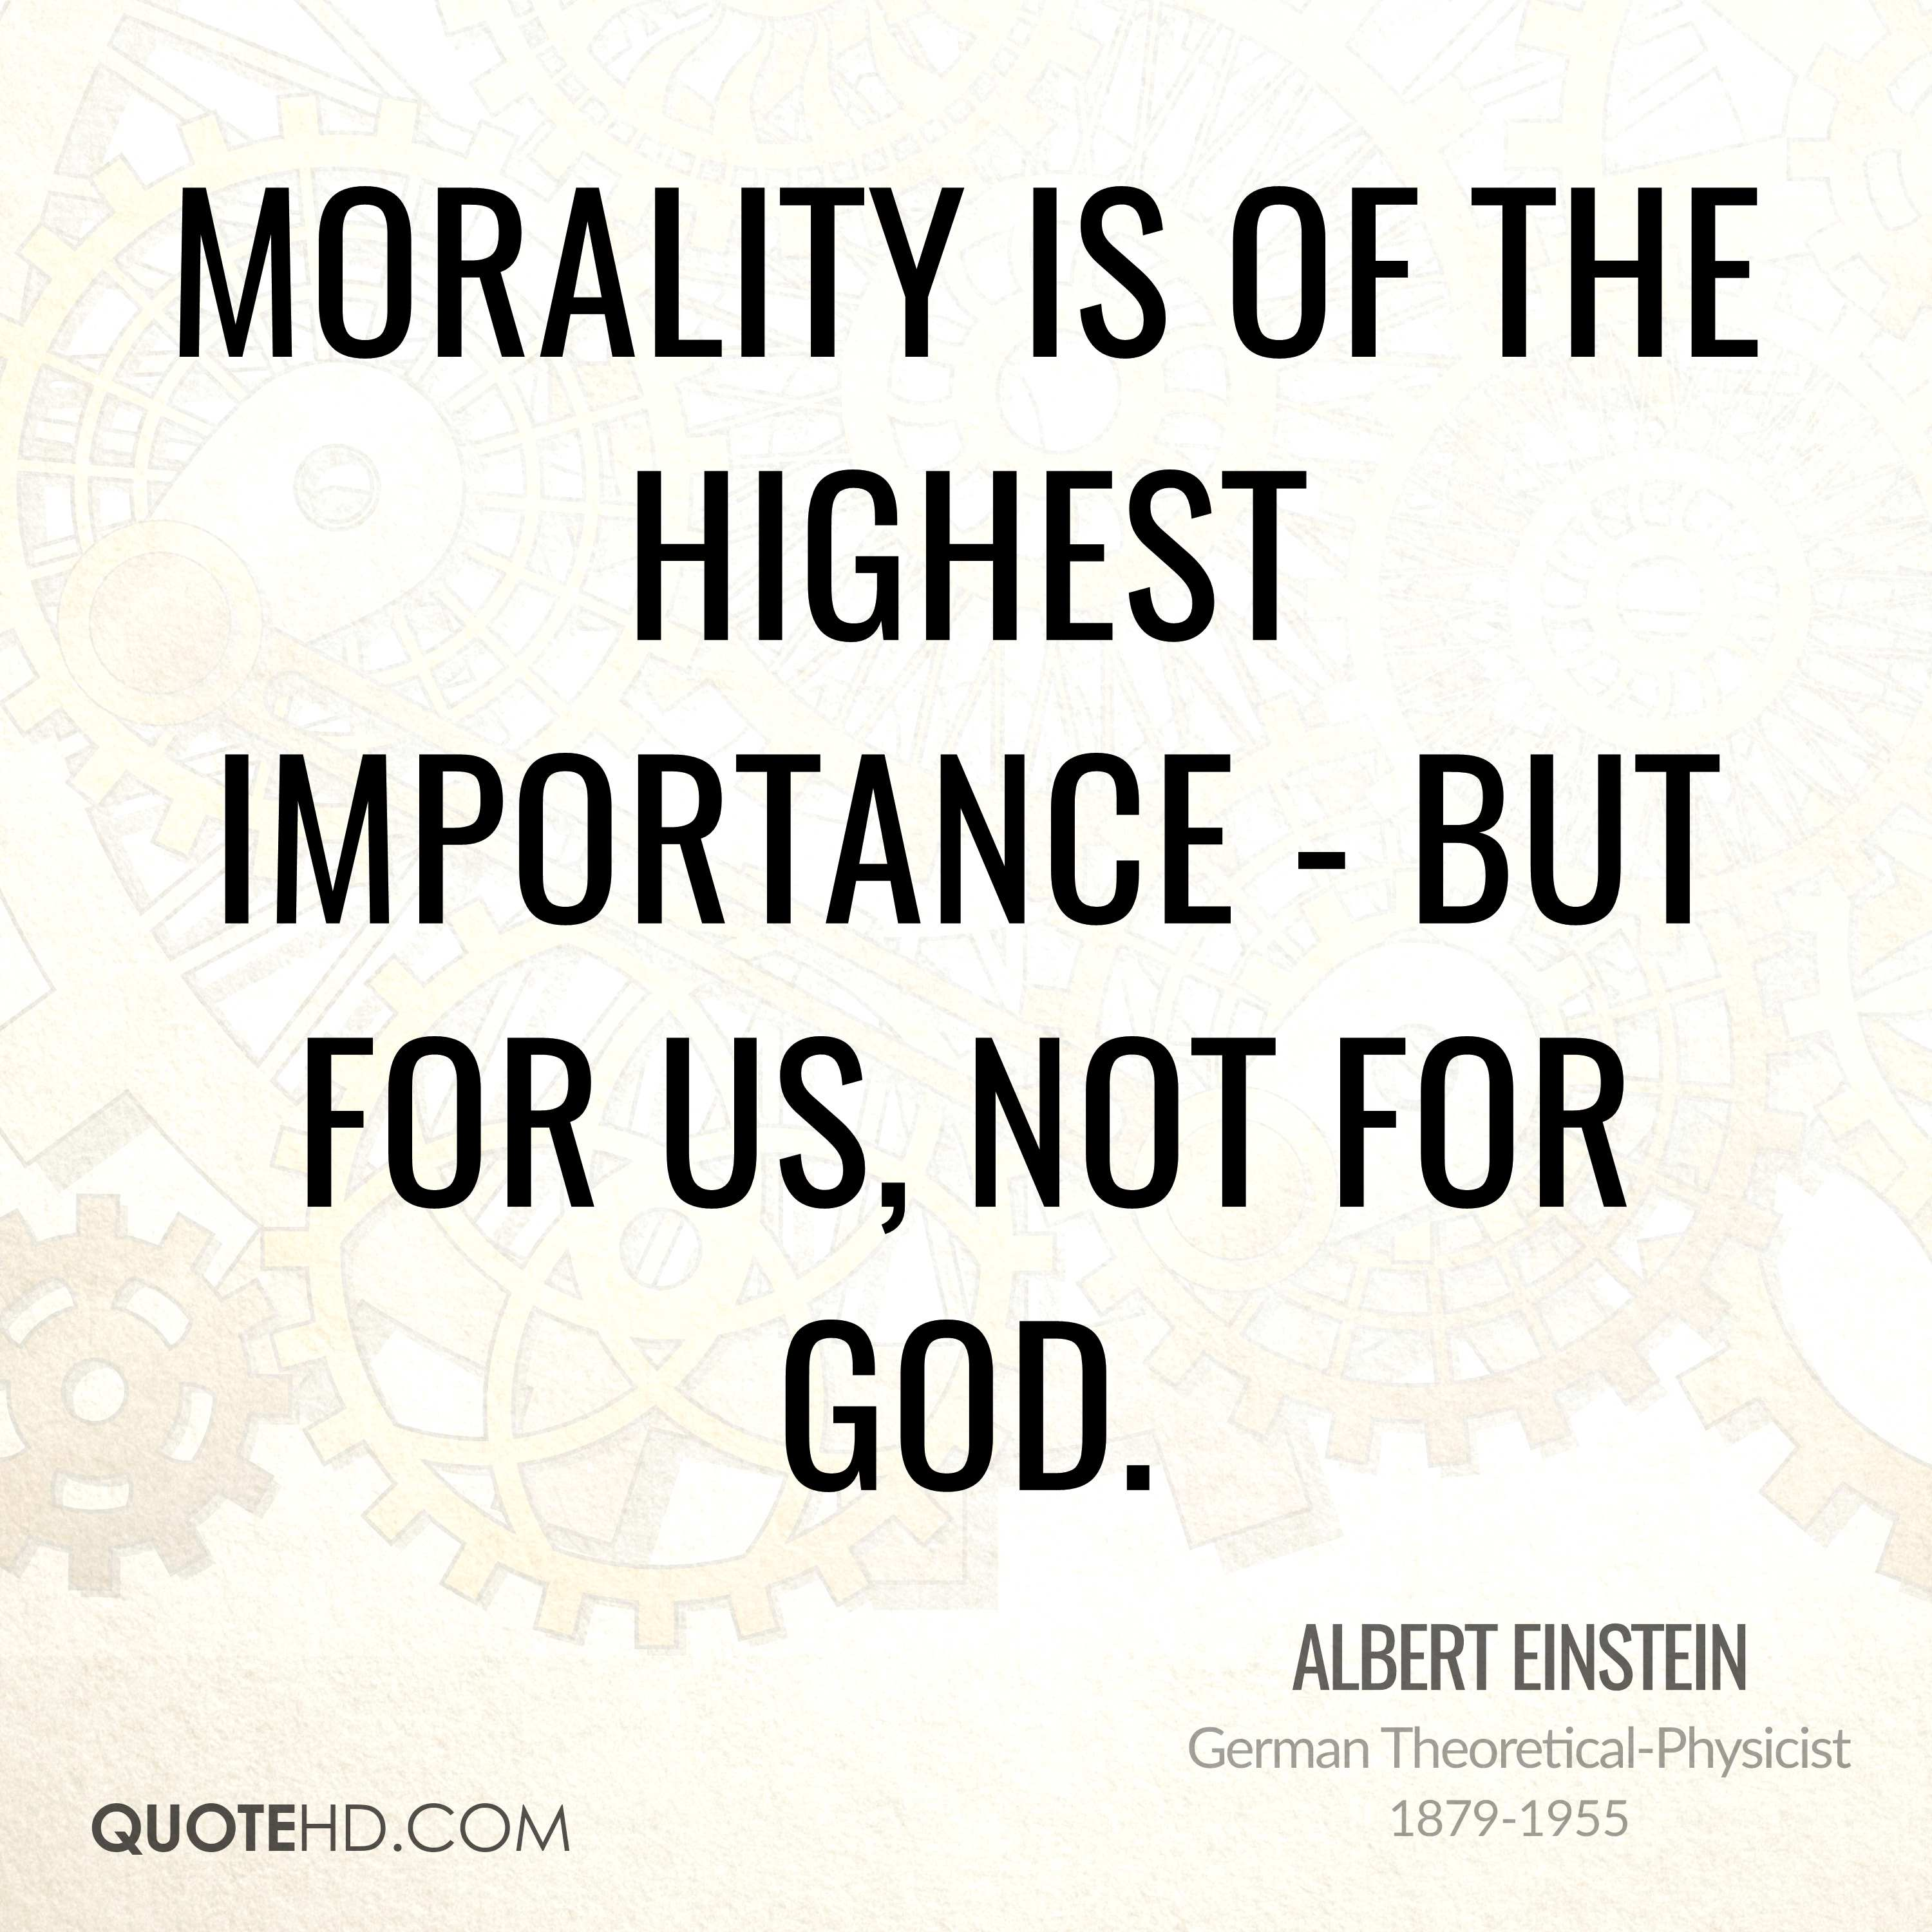 Morality is of the highest importance - but for us, not for God.